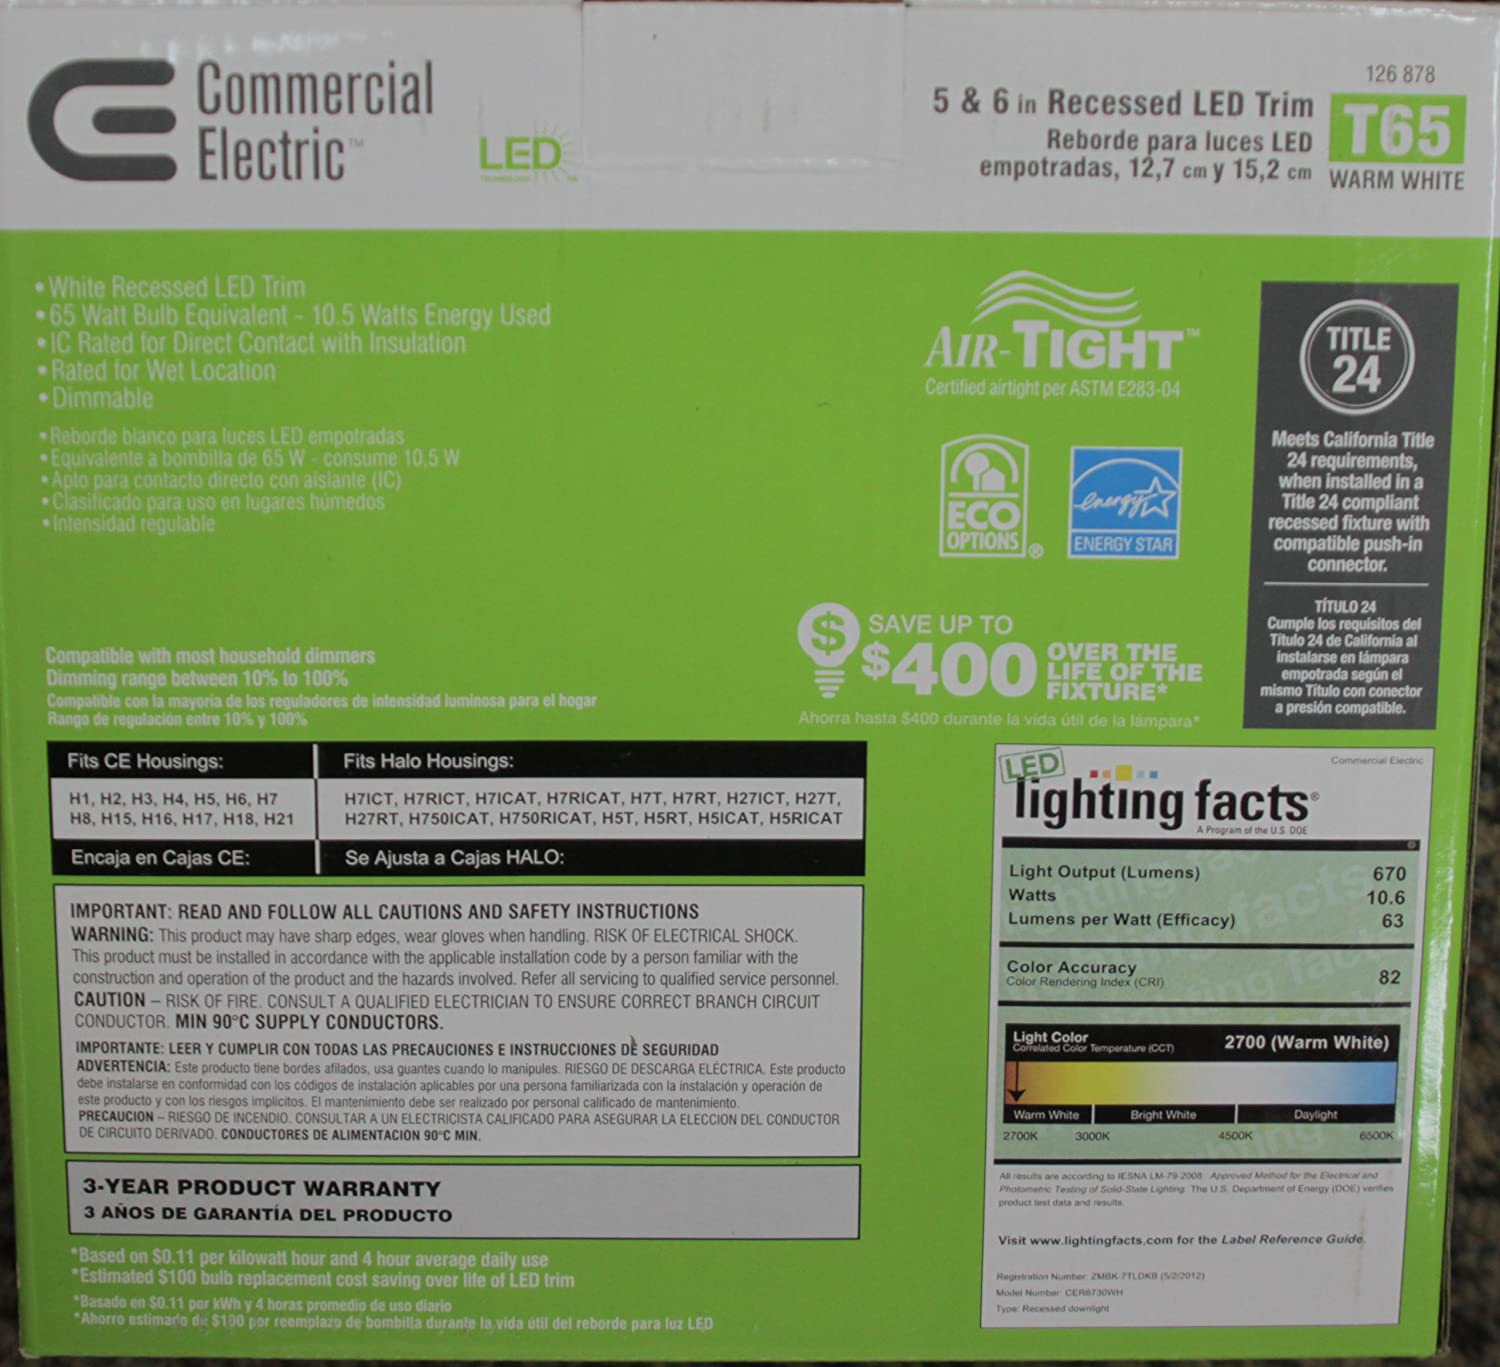 Qty 4 / Commercial Electric 5 and 6 in. Recessed LED Light 11 Watt Dimmable - Led Household Light Bulbs - Amazon.com